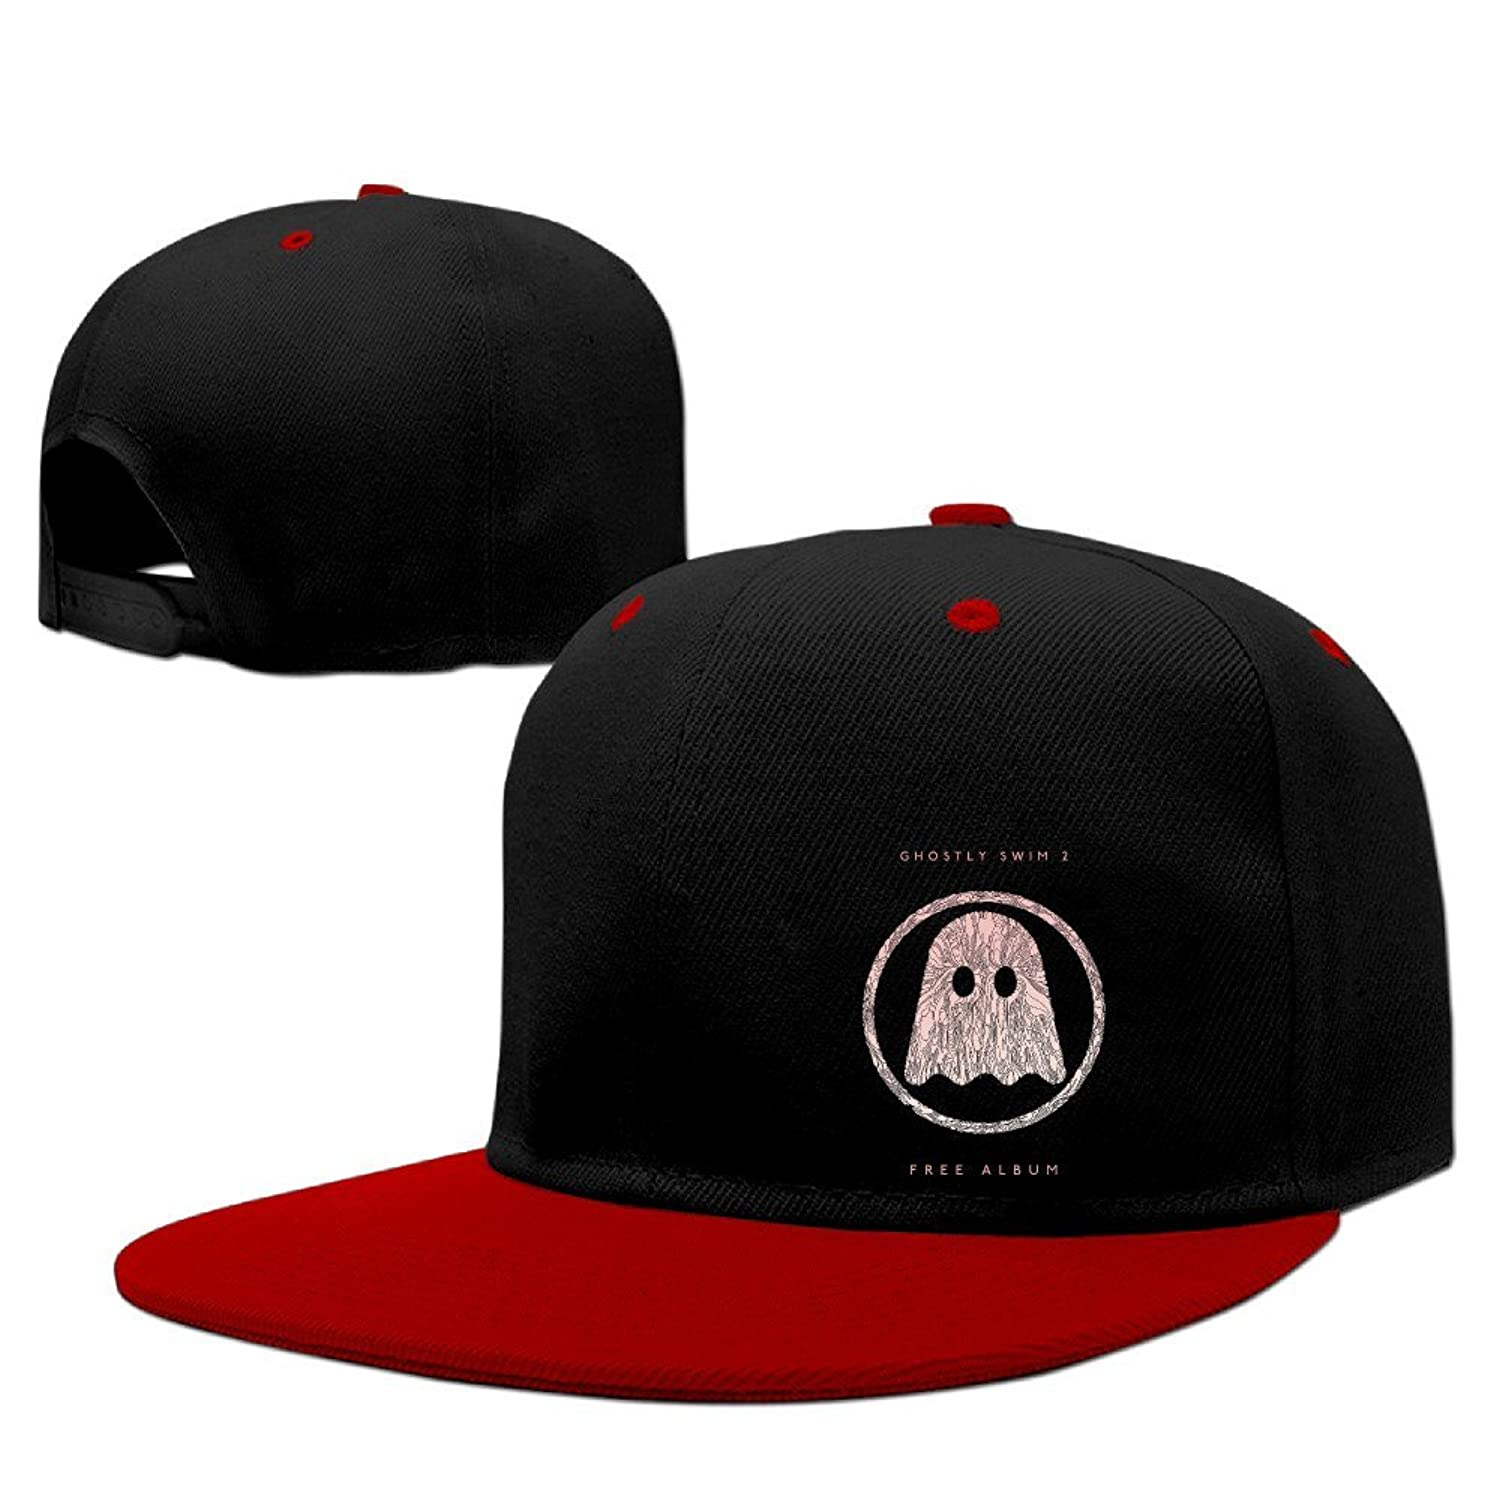 POPYol Ghostly Swim Snapback Adjustable Hip Pop Baseball Caps Hats For Unisex